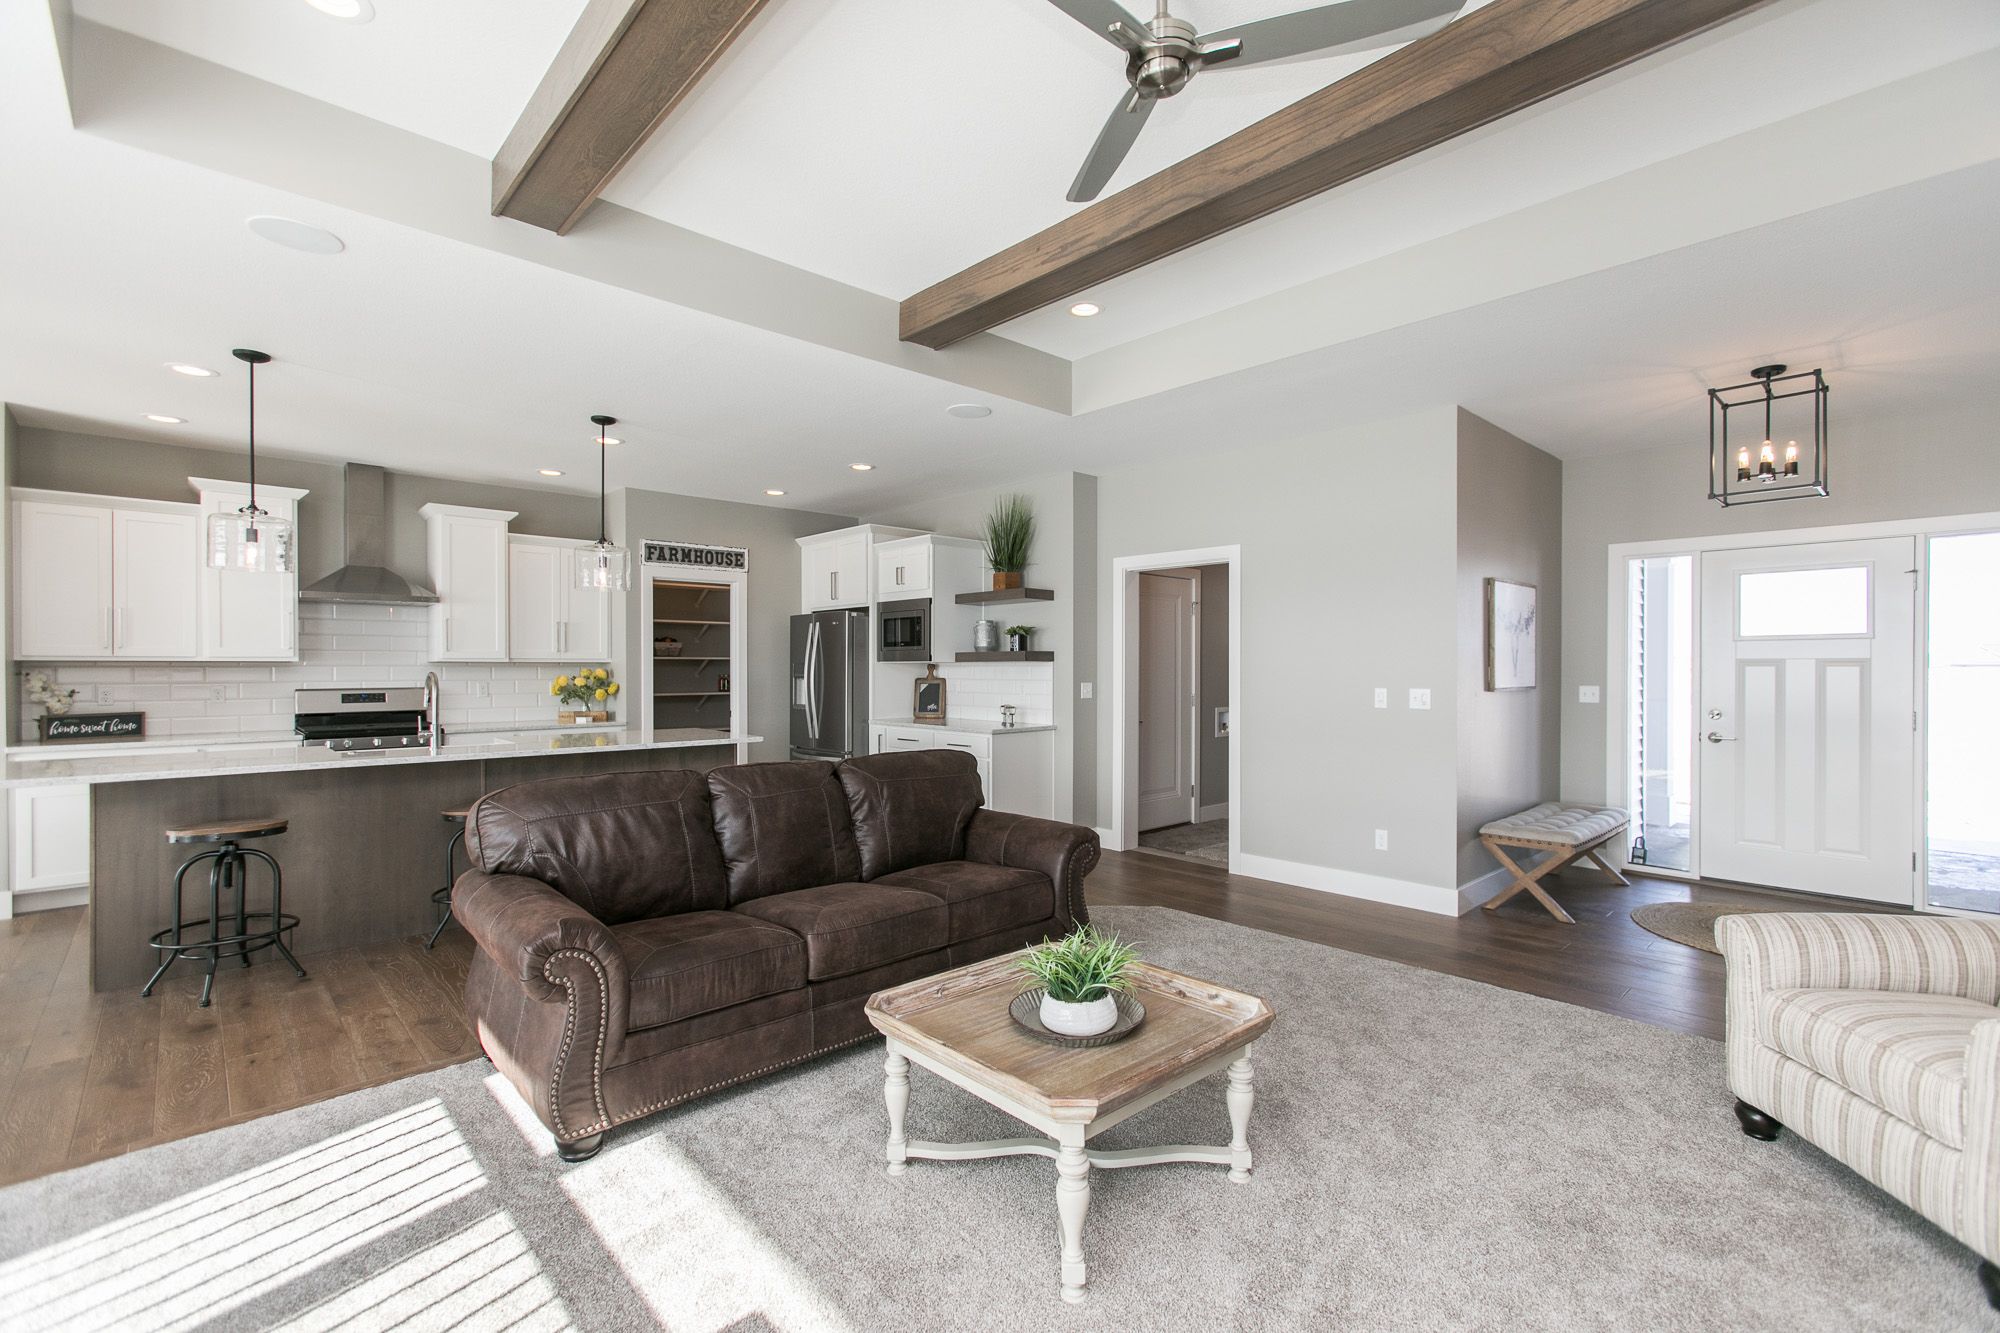 2019 Spring Parade of Homes entry